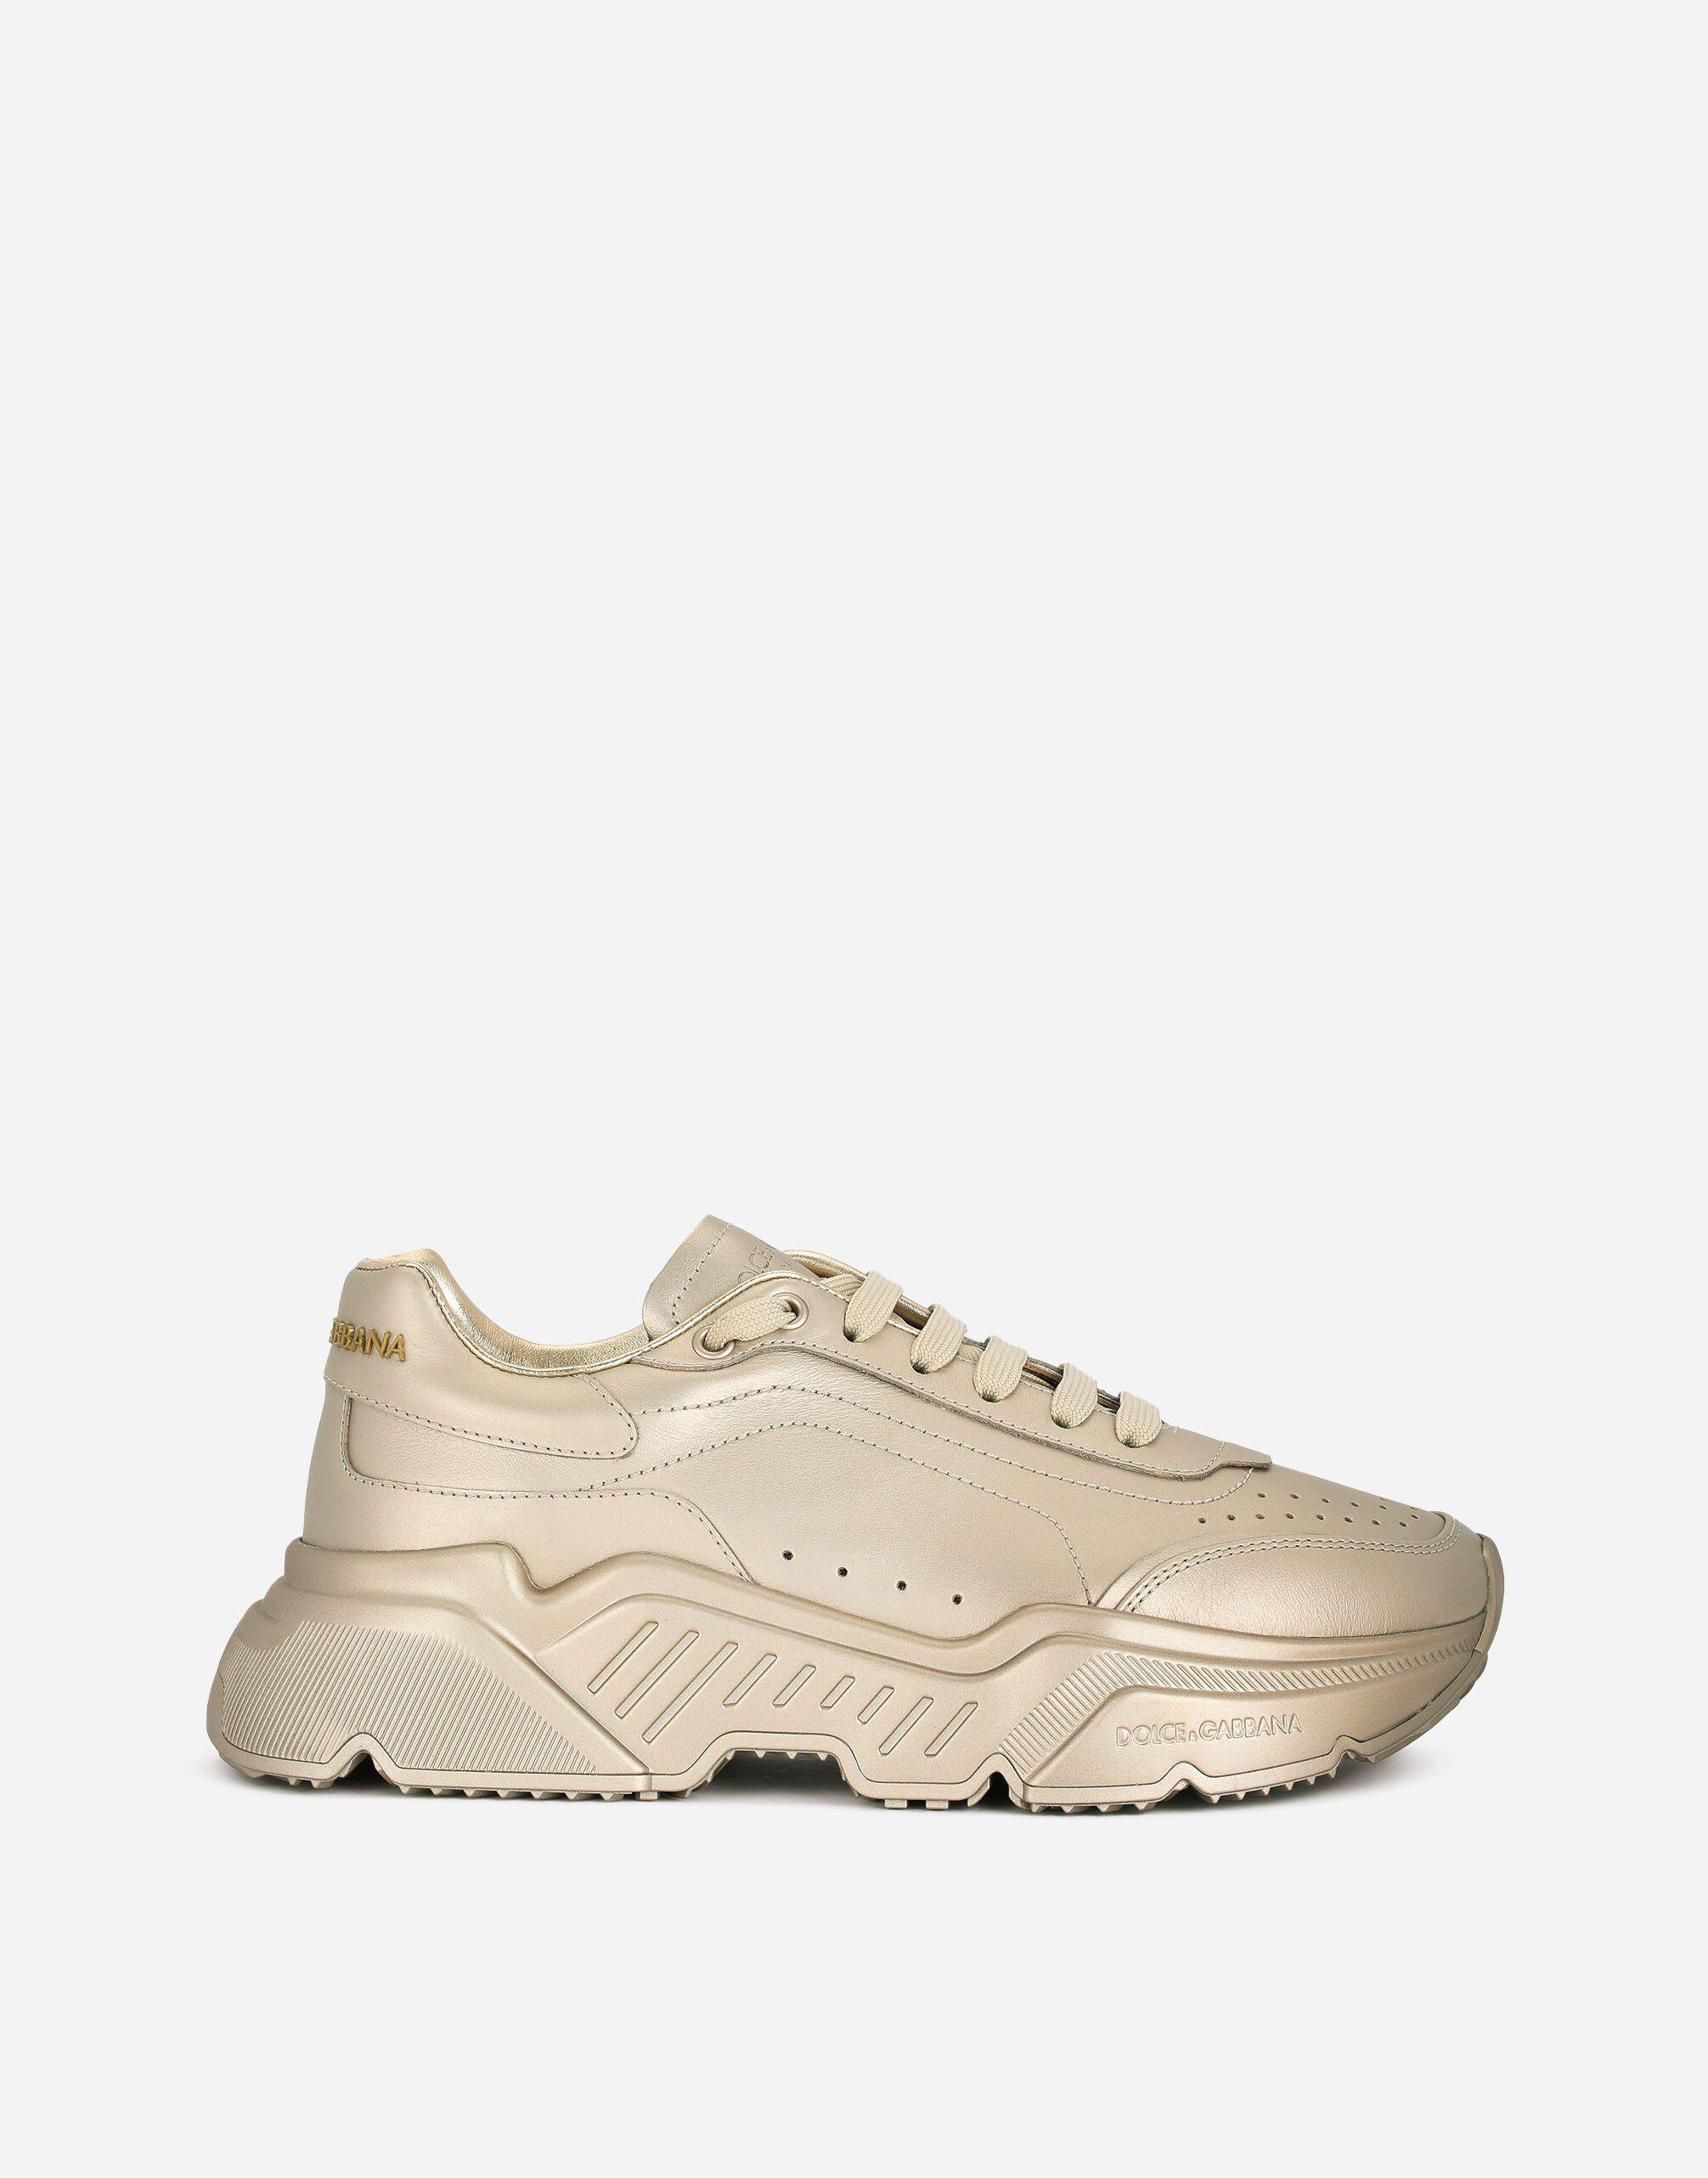 Foiled-effect calfskin nappa Daymaster sneakers